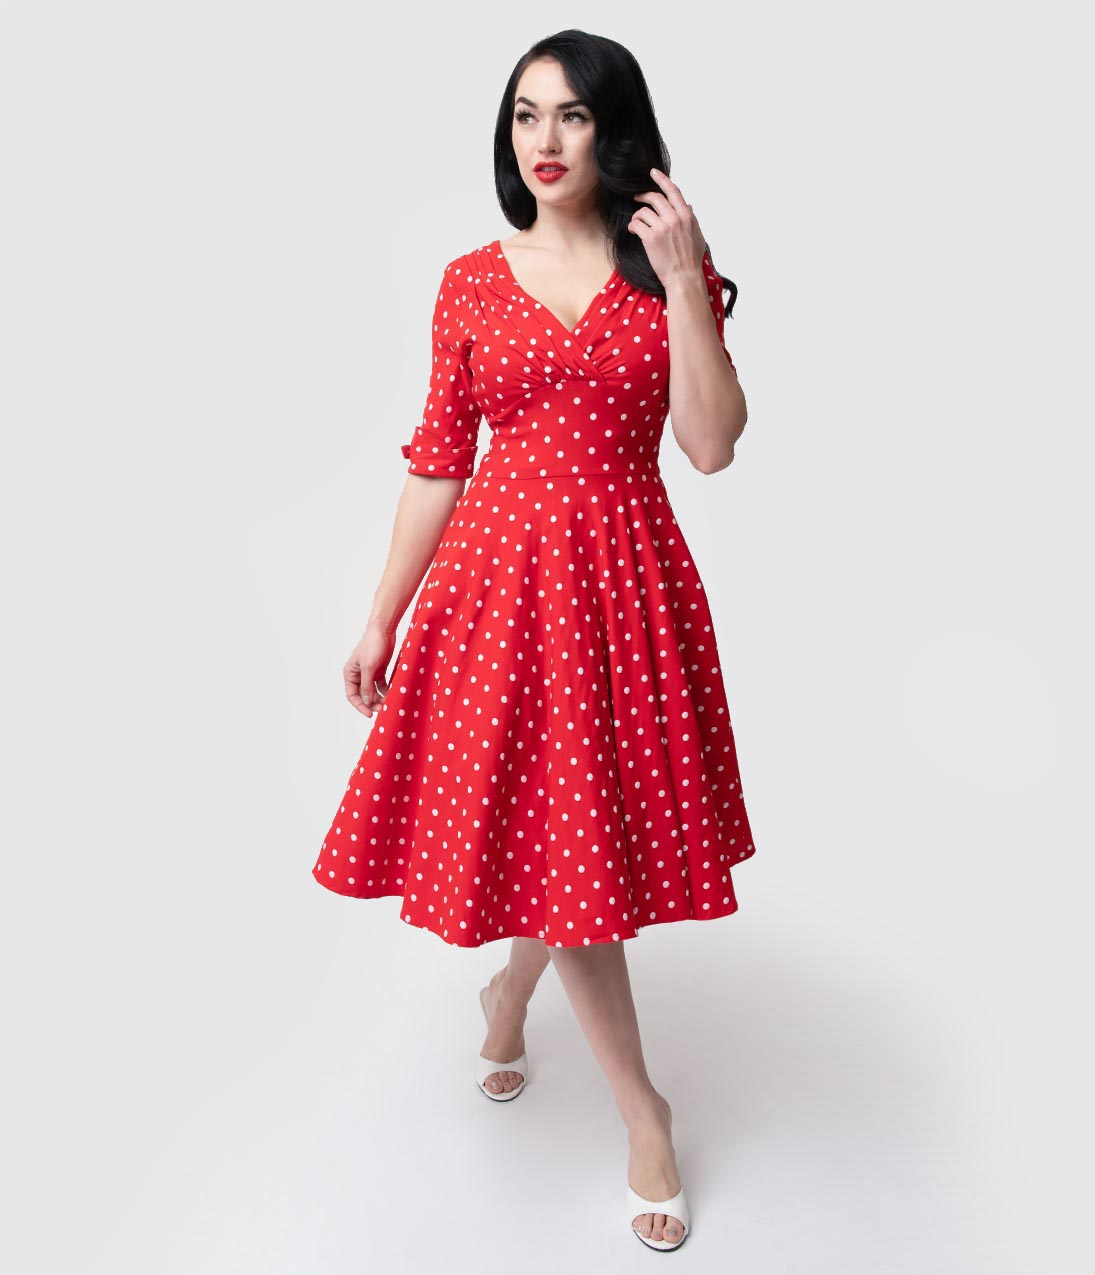 Rockabilly Dresses | Rockabilly Clothing | Viva Las Vegas Unique Vintage 1950S Red  White Dot Delores Swing Dress With Sleeves $92.00 AT vintagedancer.com